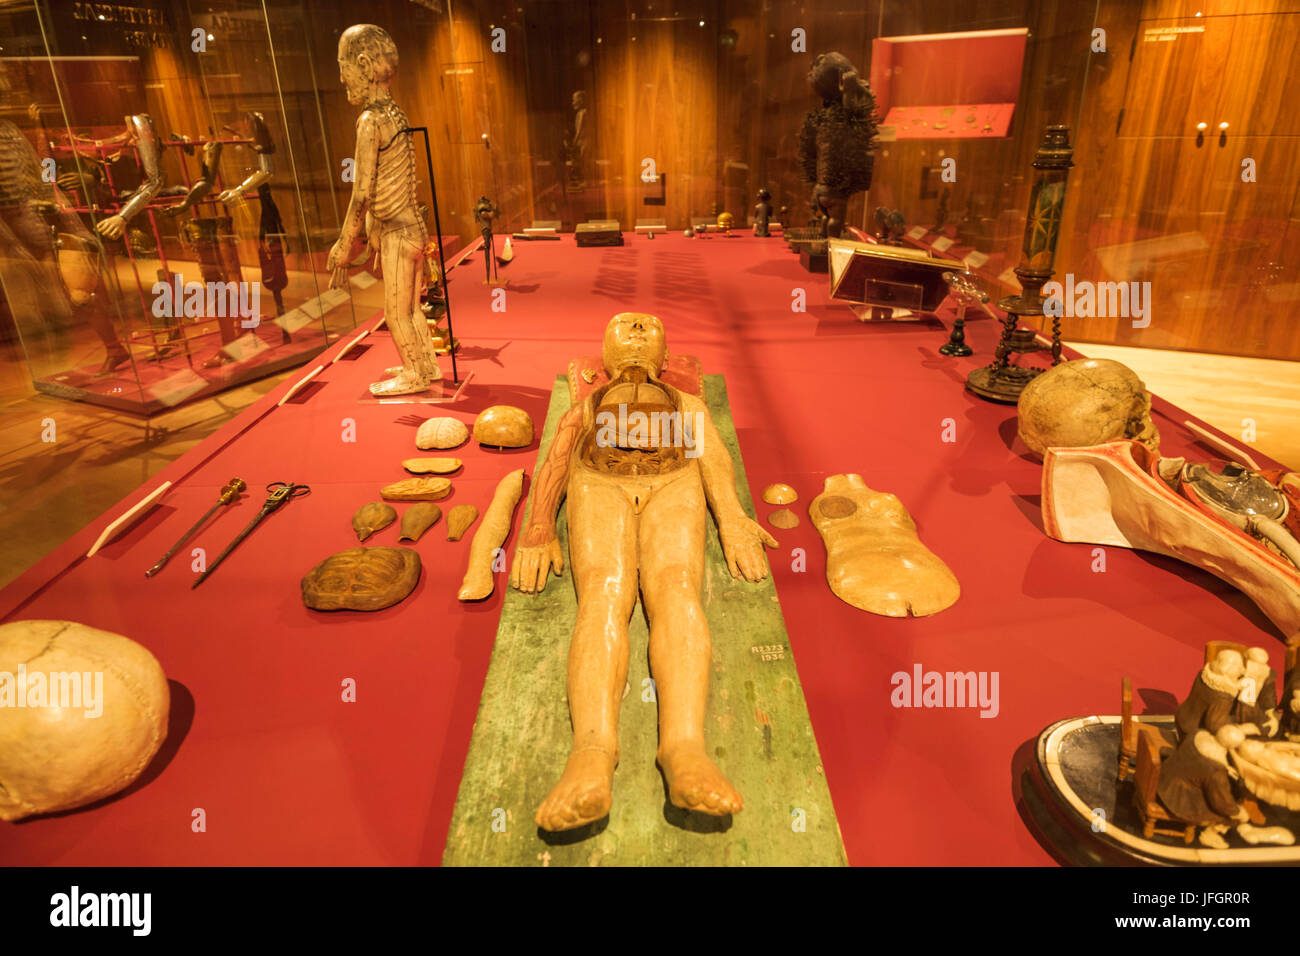 England, London, The Wellcome Collection, Exhibit of German Anatomical Wooden Figure dated 1700 - Stock Image